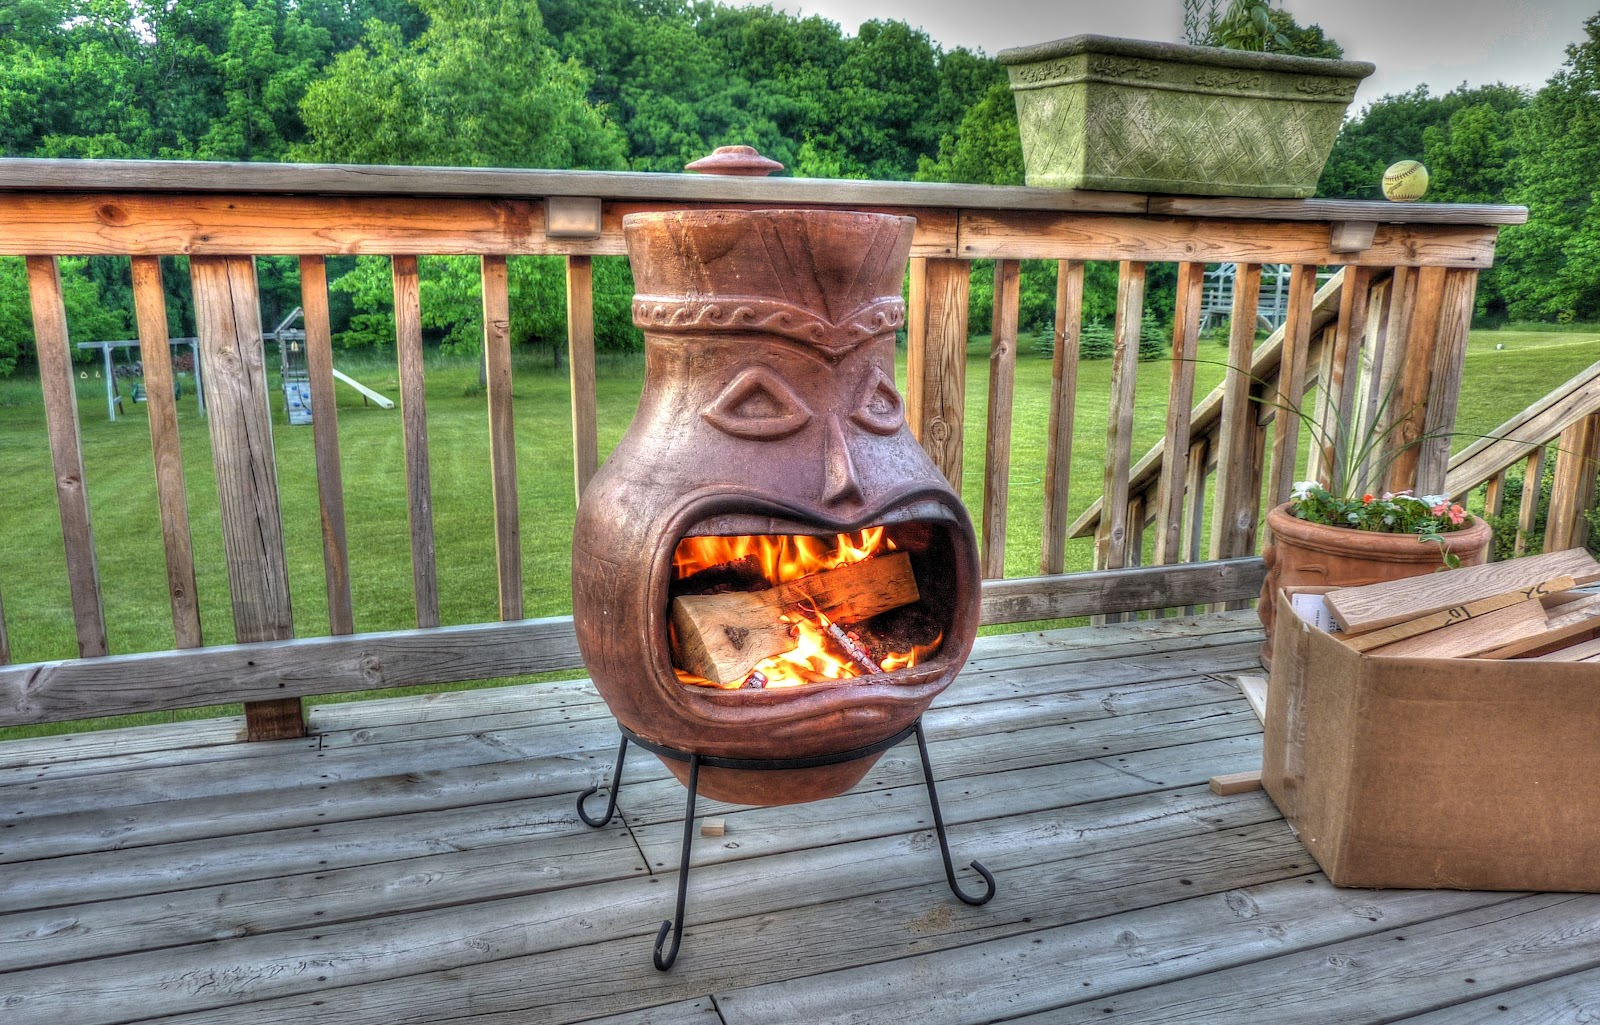 clay chiminea patiodesign_susumeviton_com